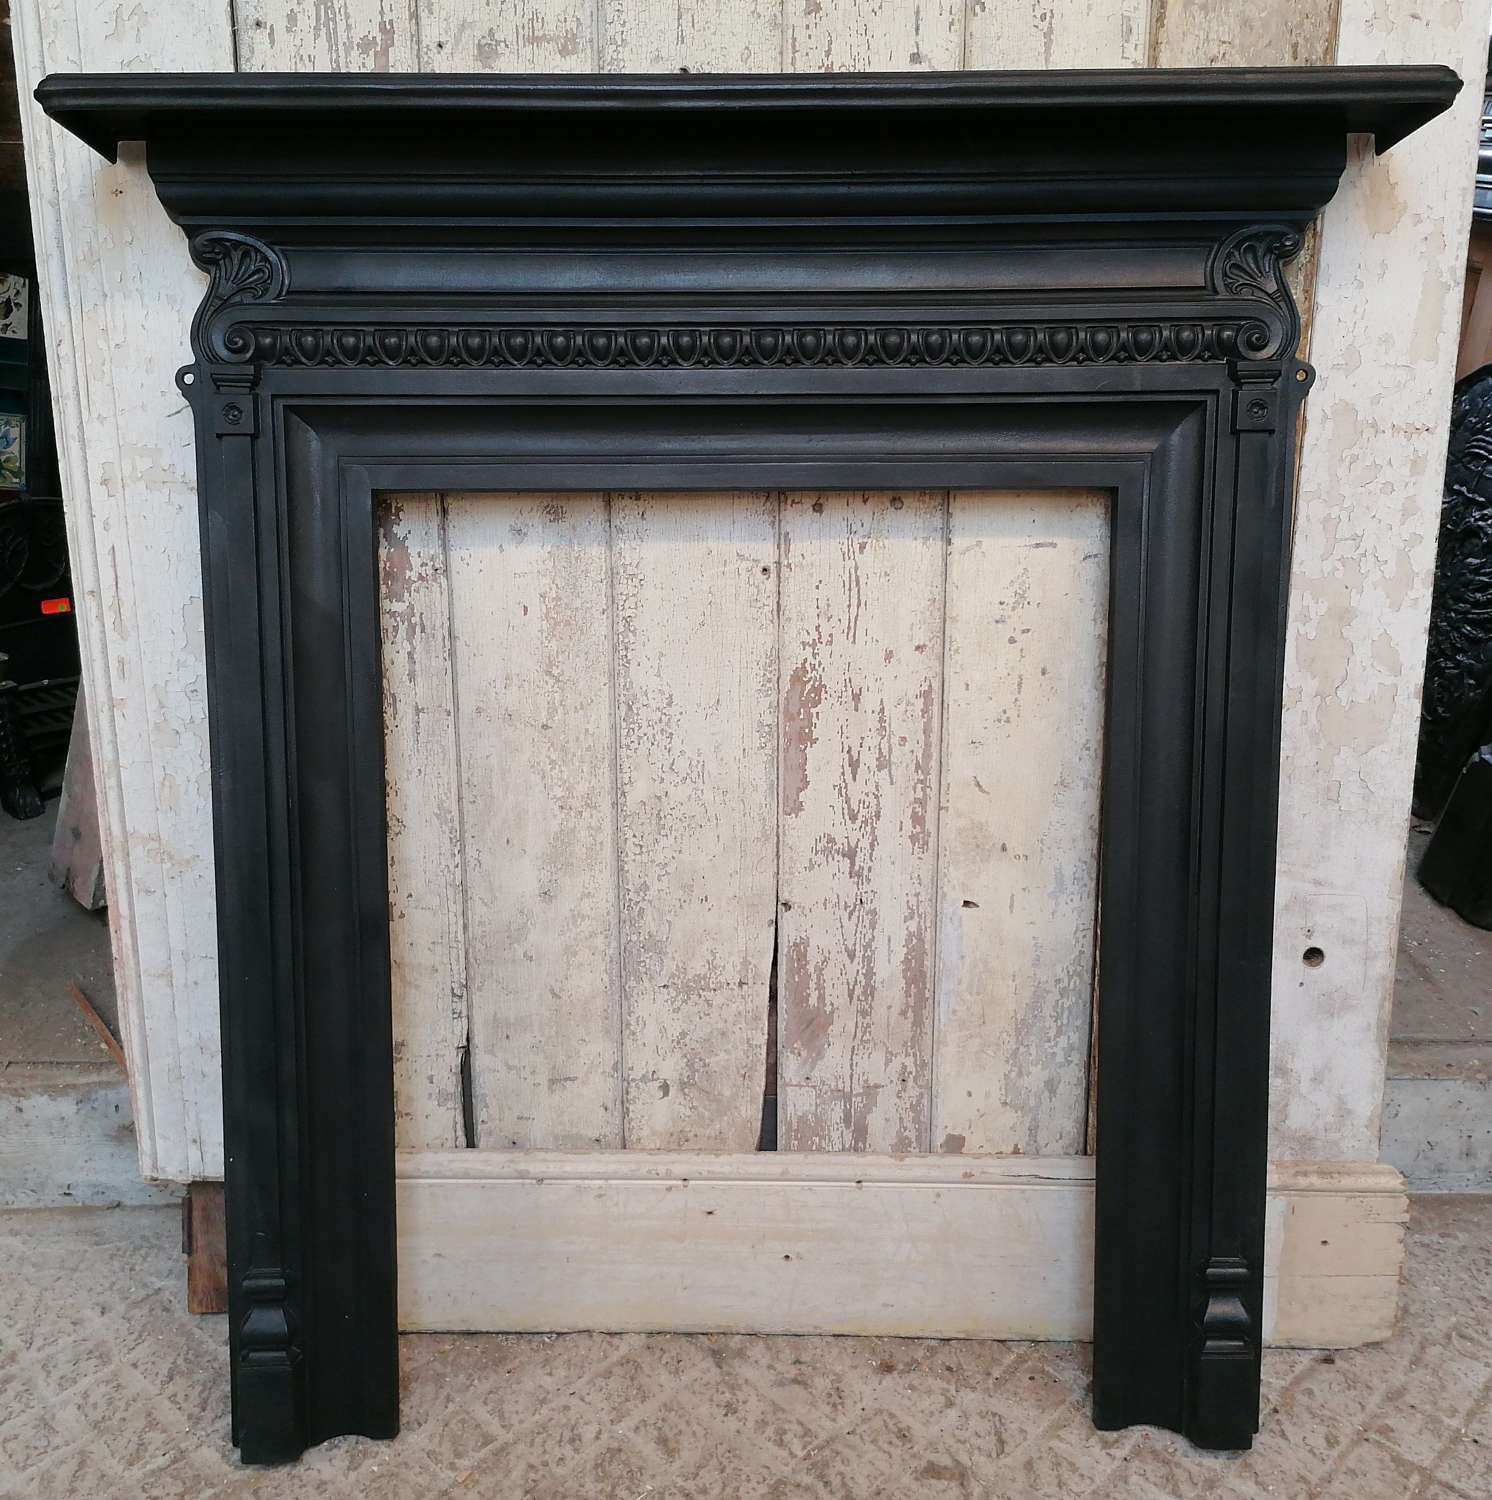 FS0130 A TALL ANTIQUE CAST IRON FIRE SURROUND FOR WOOD BURNER